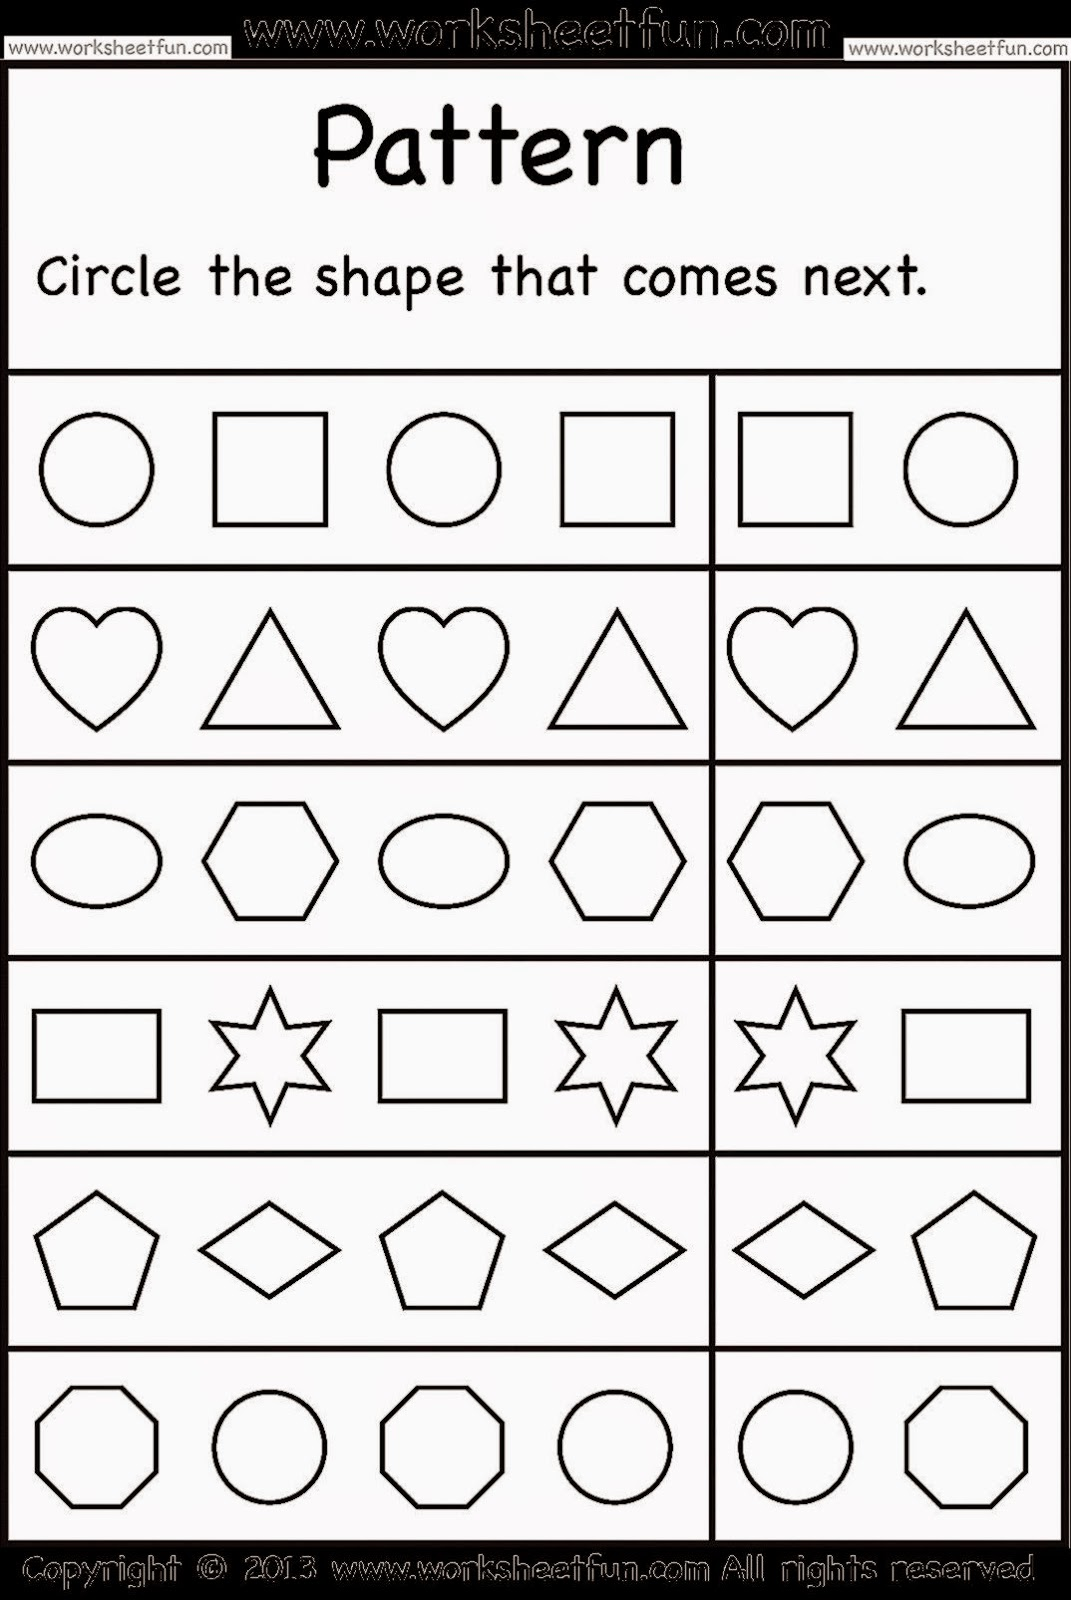 Free Printable Phonics Worksheets For First Graders Templates – Kindergarten Phonics Worksheets Free